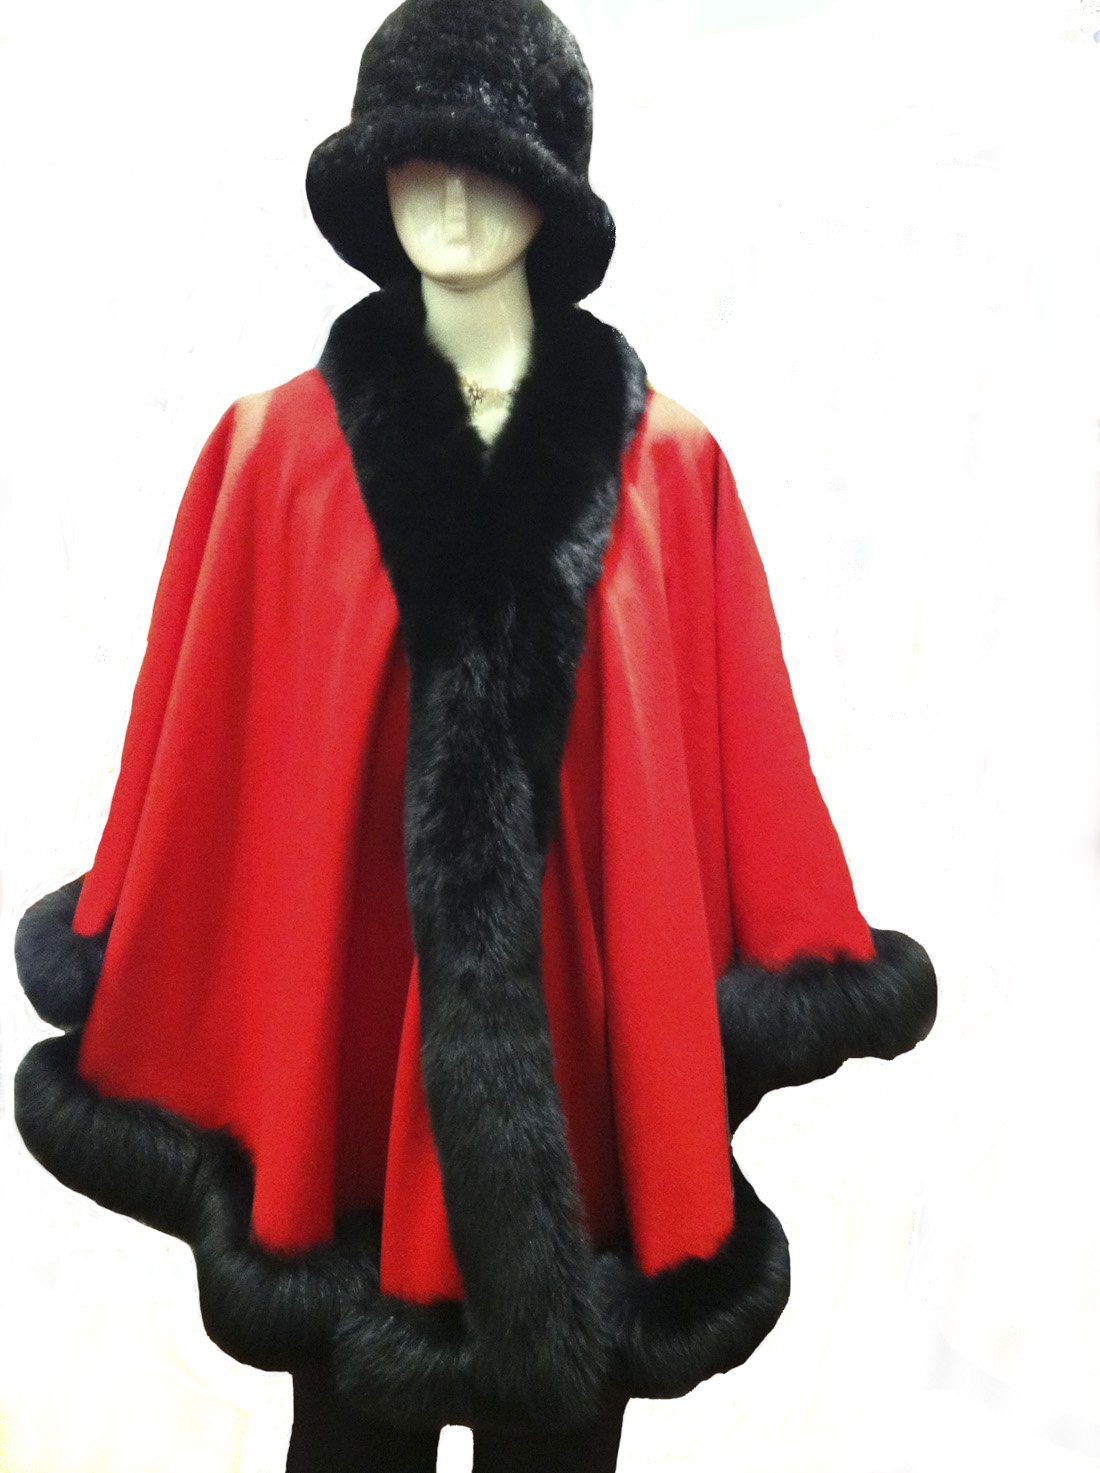 Cashmere Pashmina Group: Cashmere Cape with genuine Fox Fur Trim all around (Lipstick Red/ Black) by Cashmere Pashmina Group (Image #4)